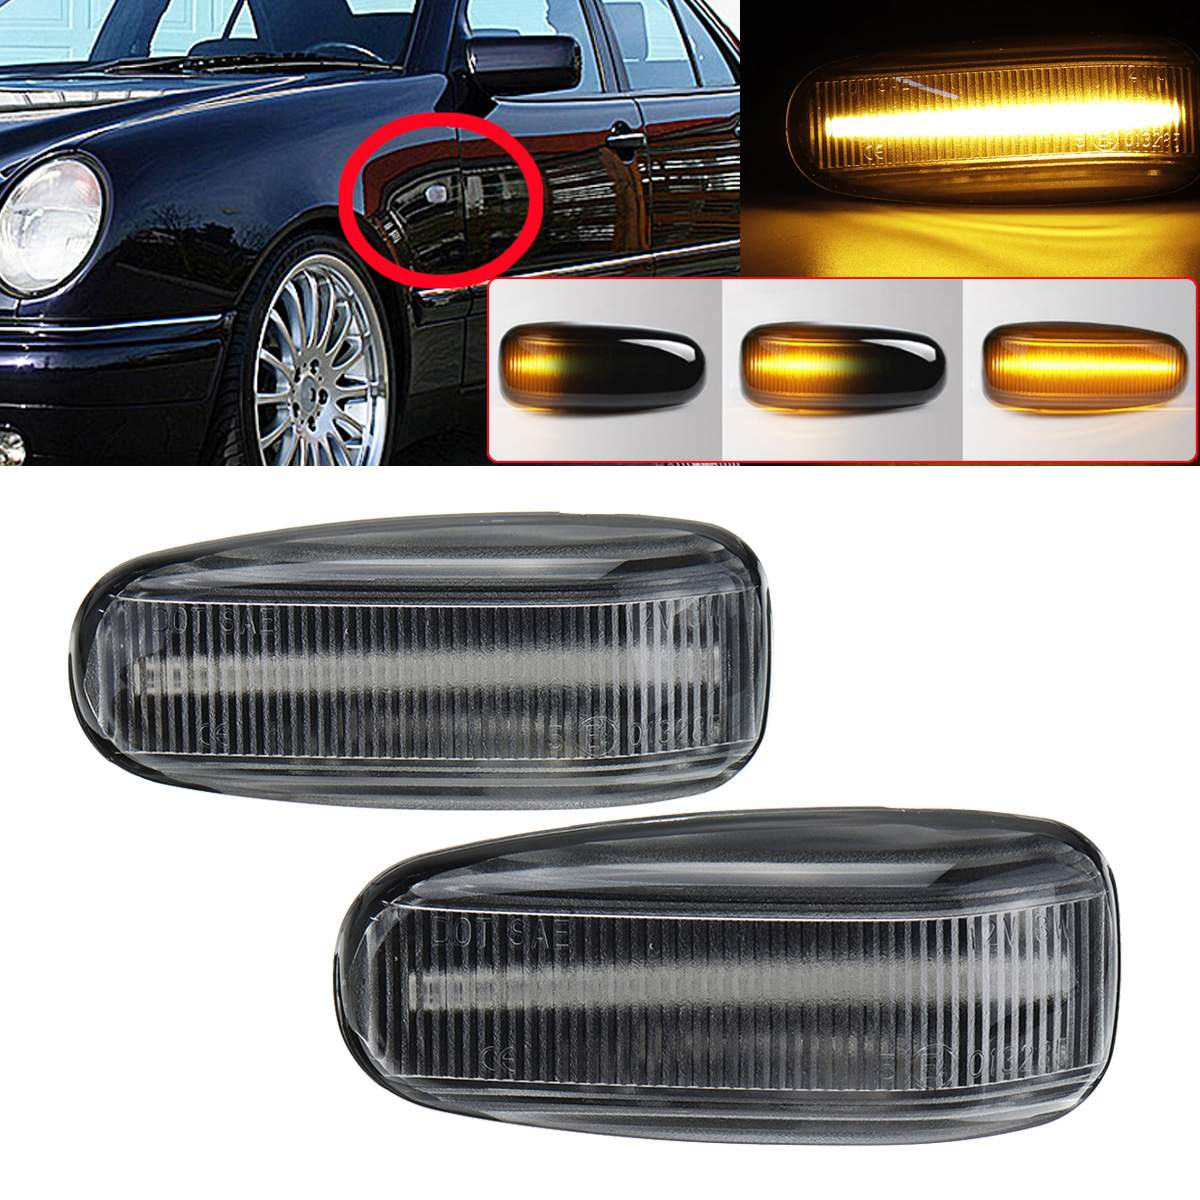 2x Mercedes Vito W639 18-LED Rear Indicator Repeater Turn Signal Light Bulbs